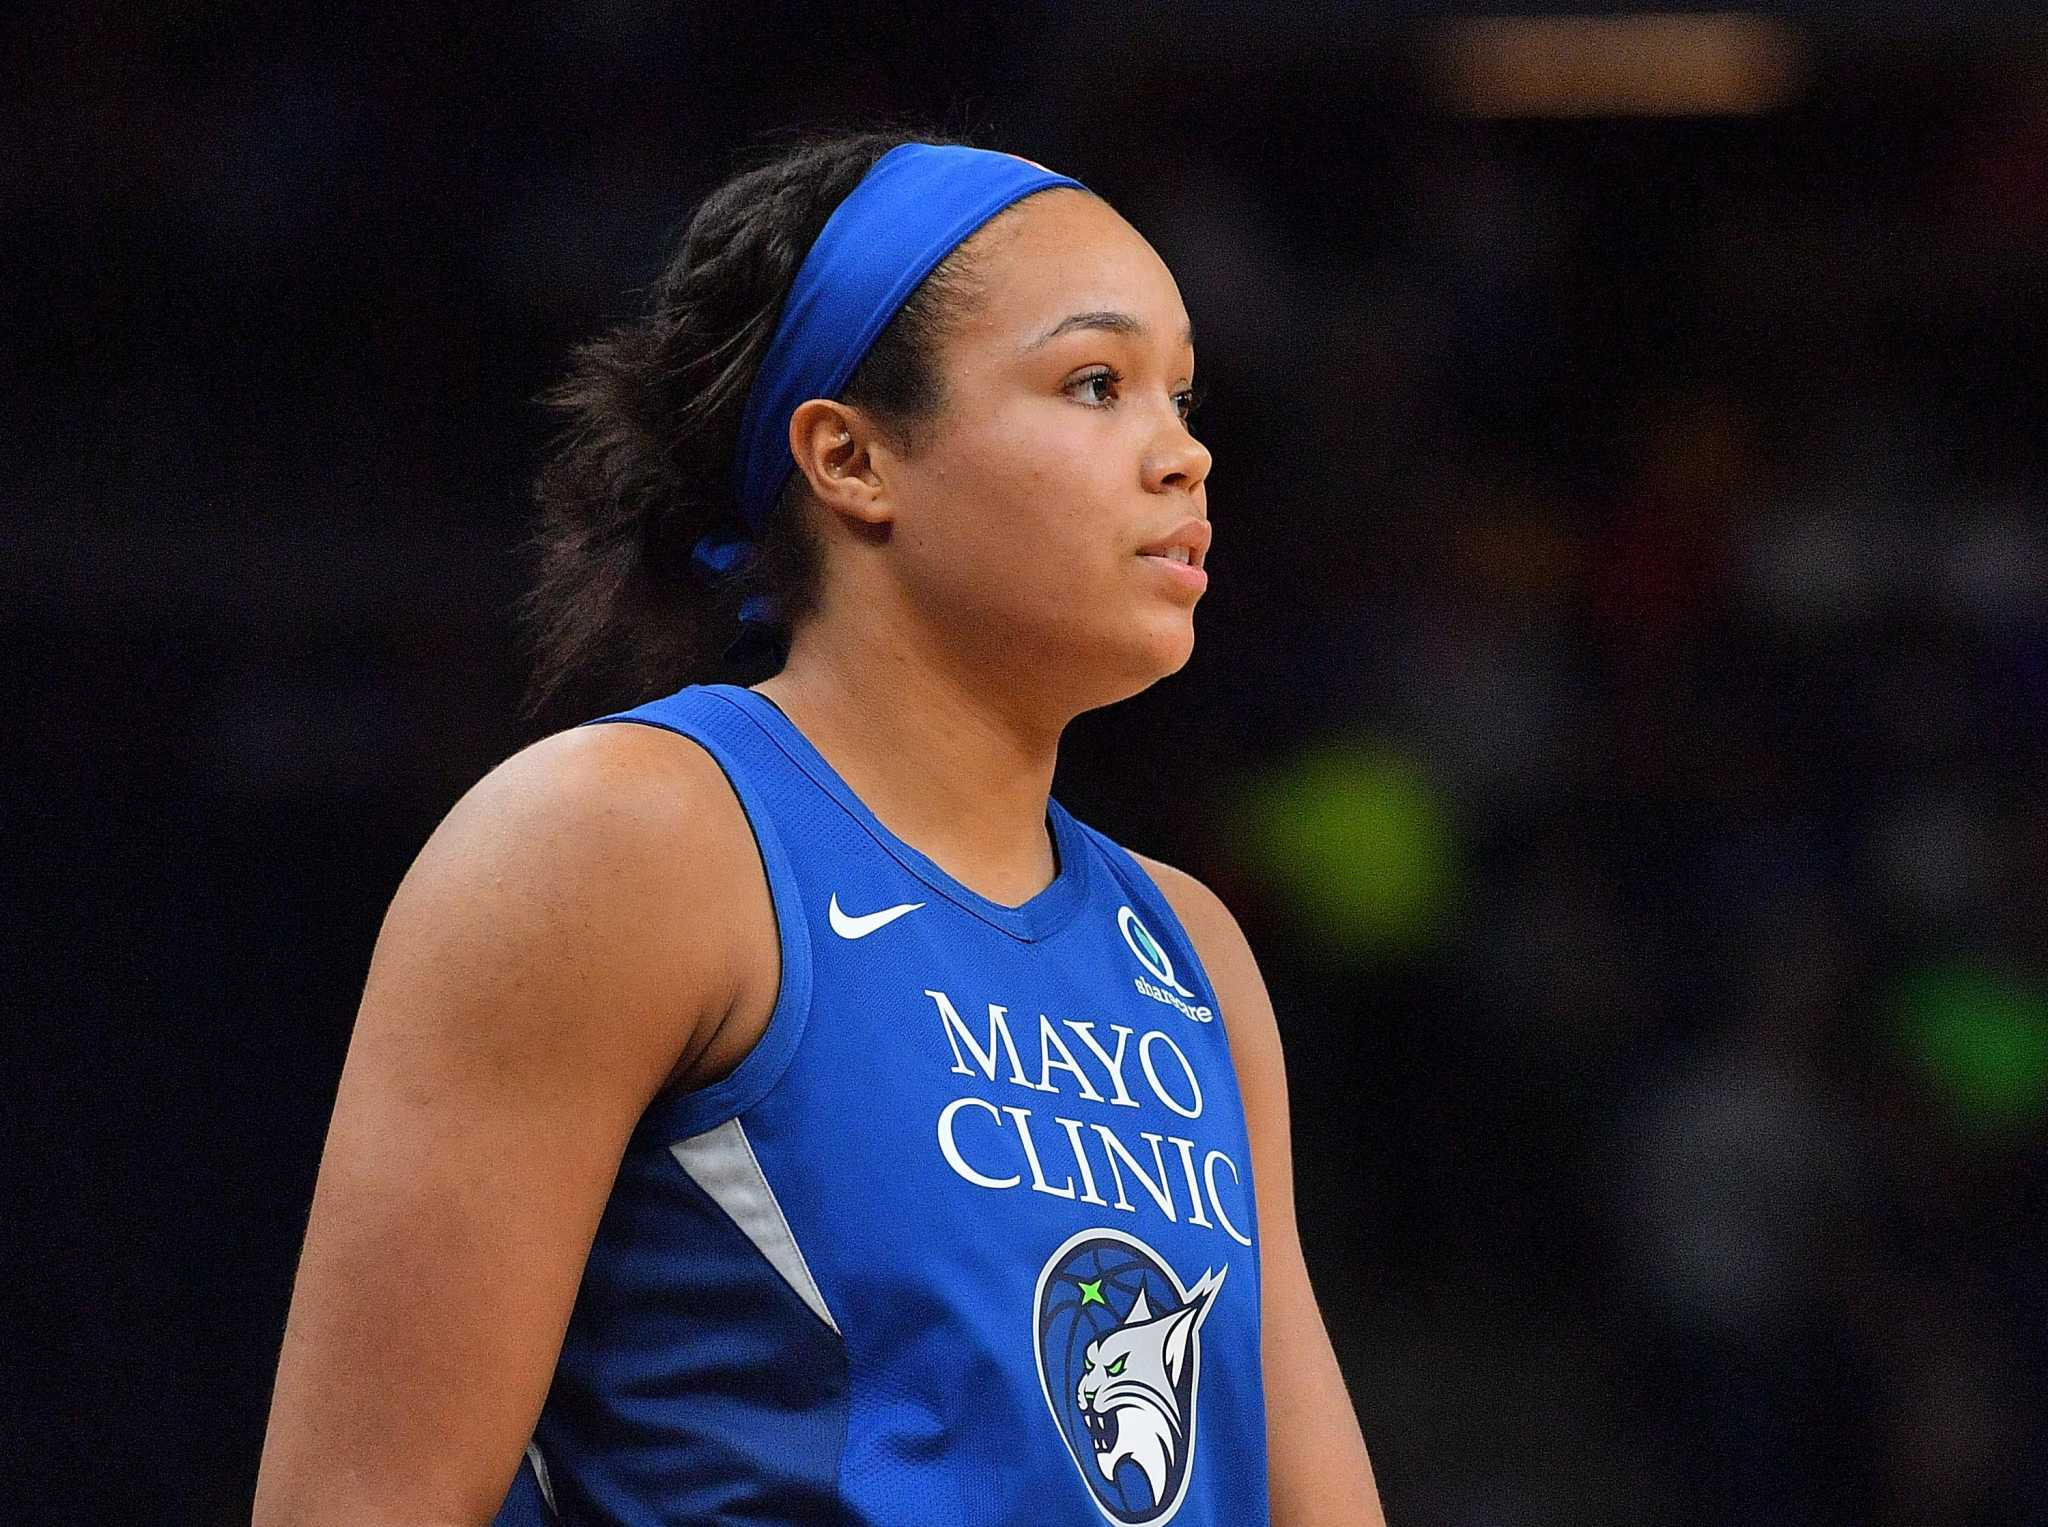 Reigning Rookie of the Year Napheesa Collier trying to stay patient as WNBA season remains on hold